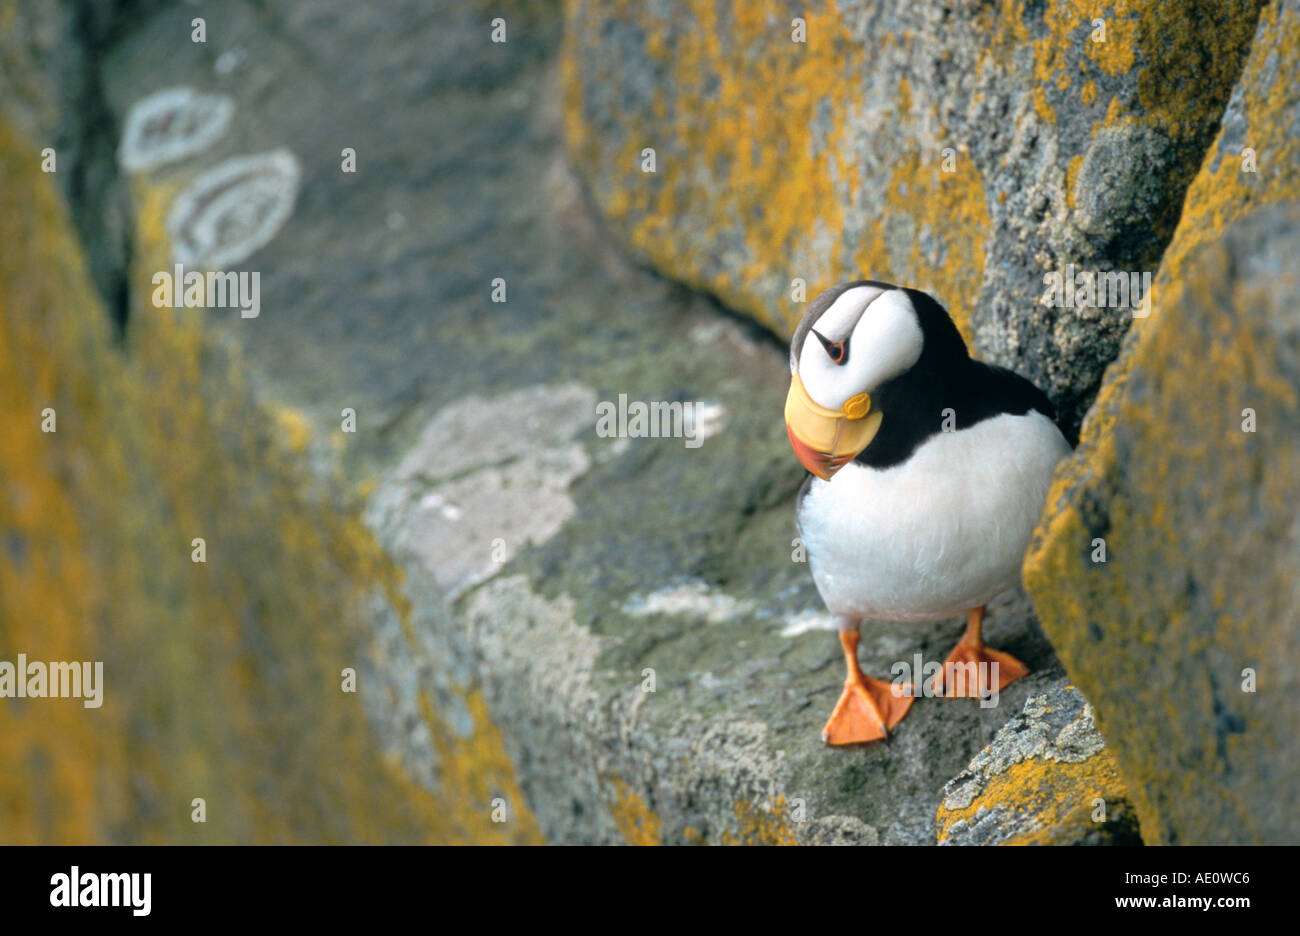 horned puffin (Fratercula corniculata), standing on rocks, looking downwards, USA, Alaska Stock Photo